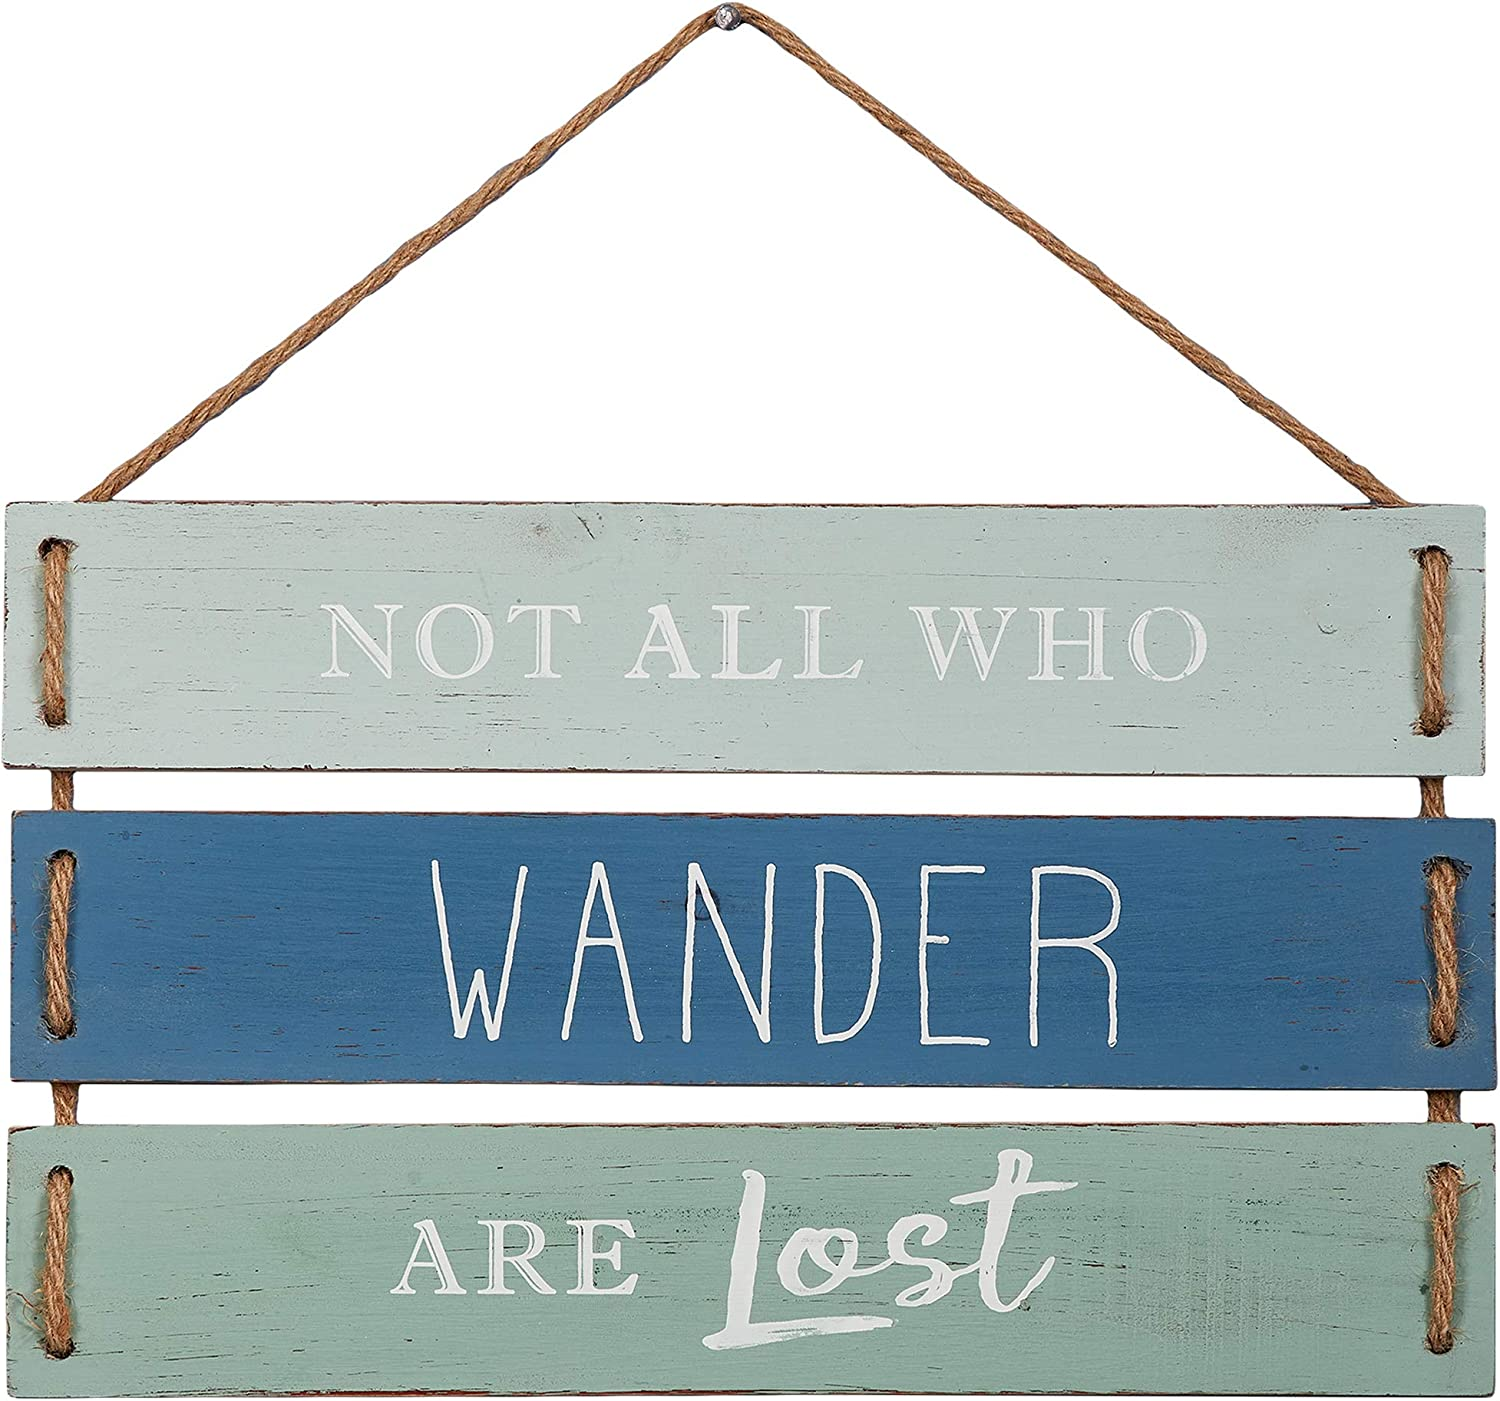 """Barnyard Designs Not All Who Wander are Lost Quote Wall Decor, Decorative Wood Plank Hanging Sign 17"""" x 9.75"""